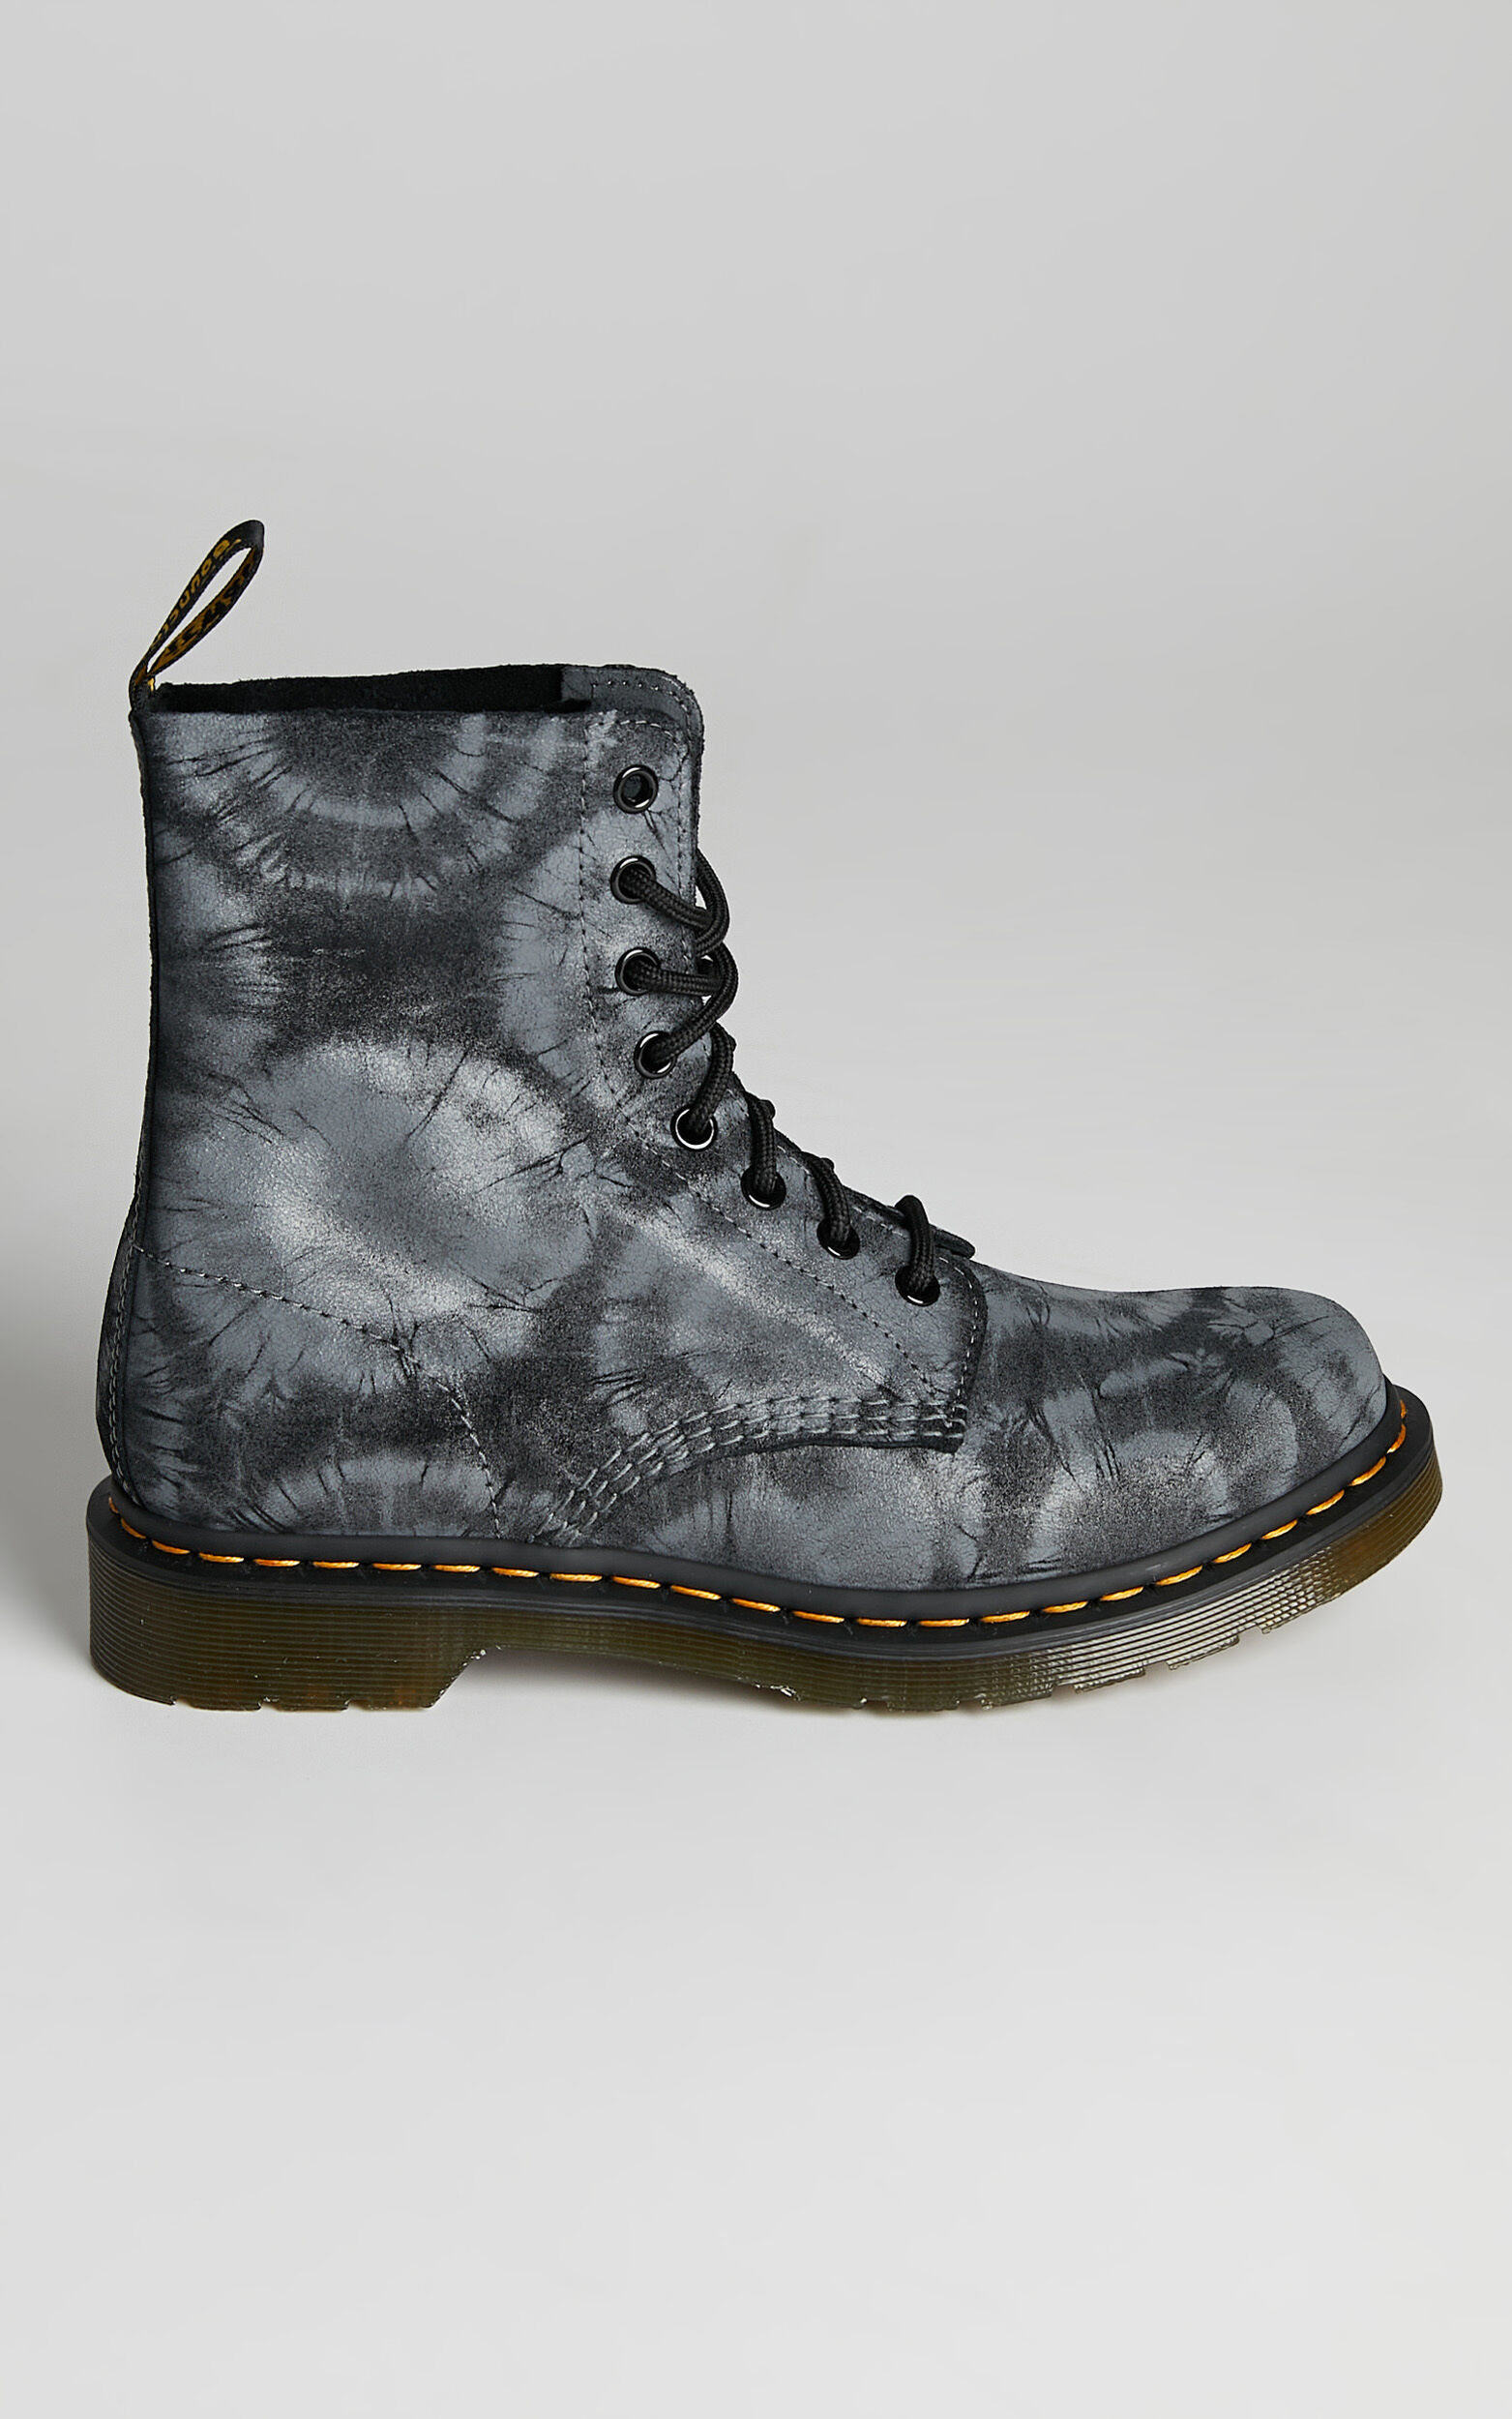 Dr. Martens - 1460 Pascal Tie Dye Boots in Black Charcoal Grey Tie Dye Printed Suede - 05, BLK1, super-hi-res image number null